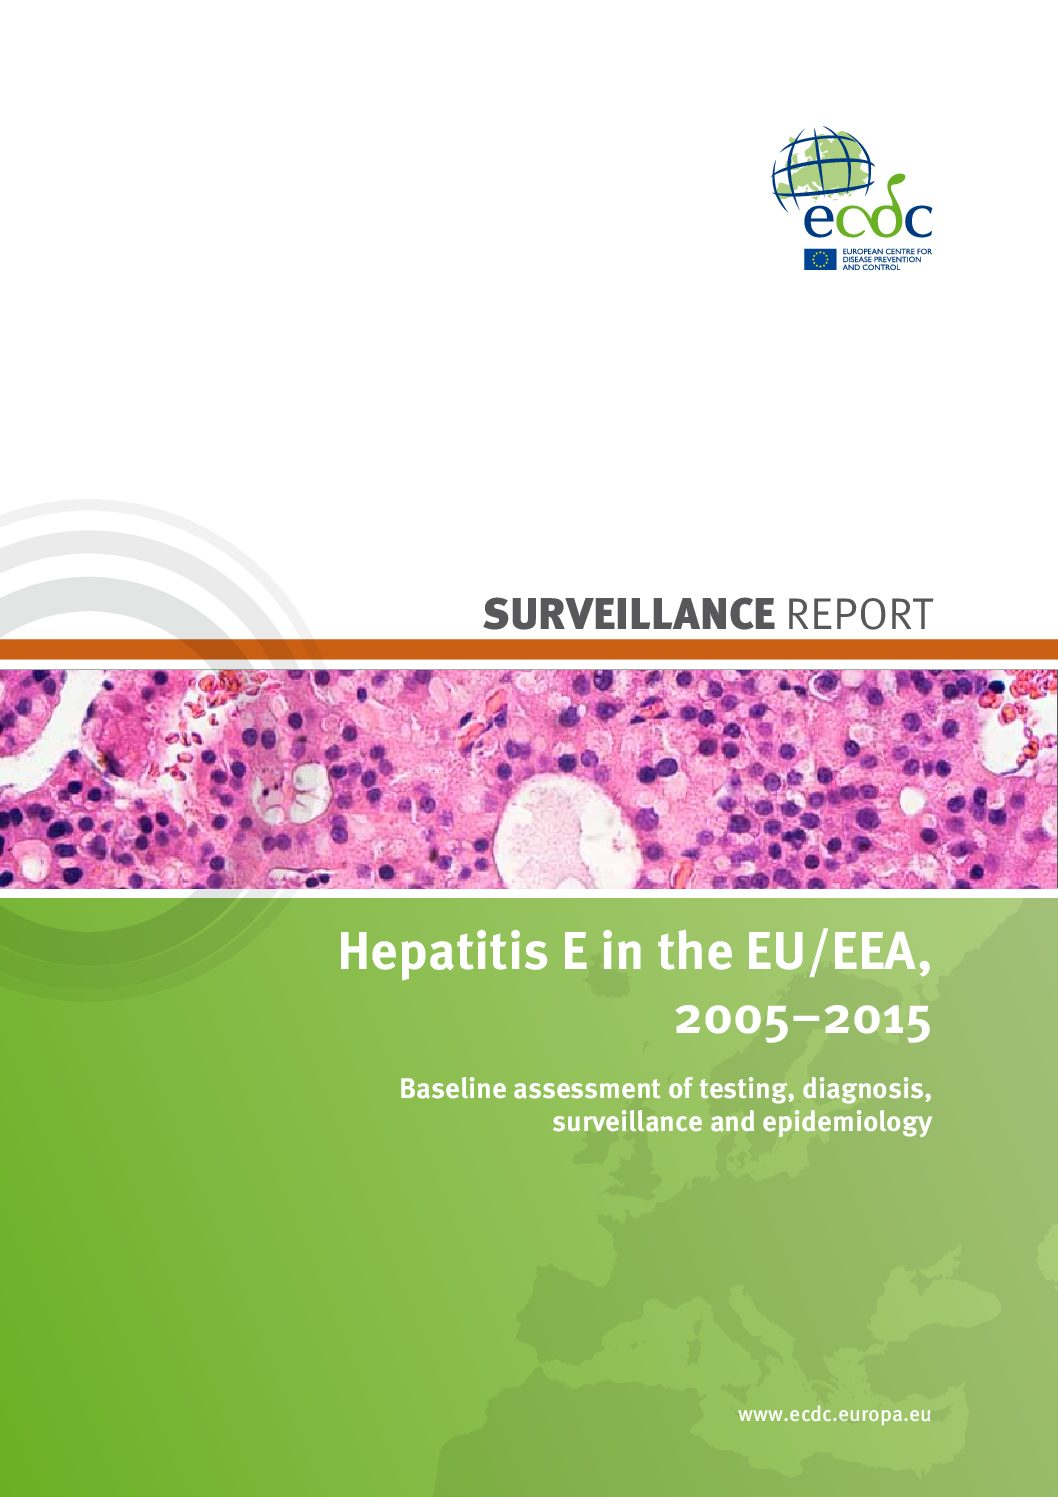 Hepatitis E in the EU/EEA, 2005–2015 Baseline assessment of testing, diagnosis, surveillance and epidemiology